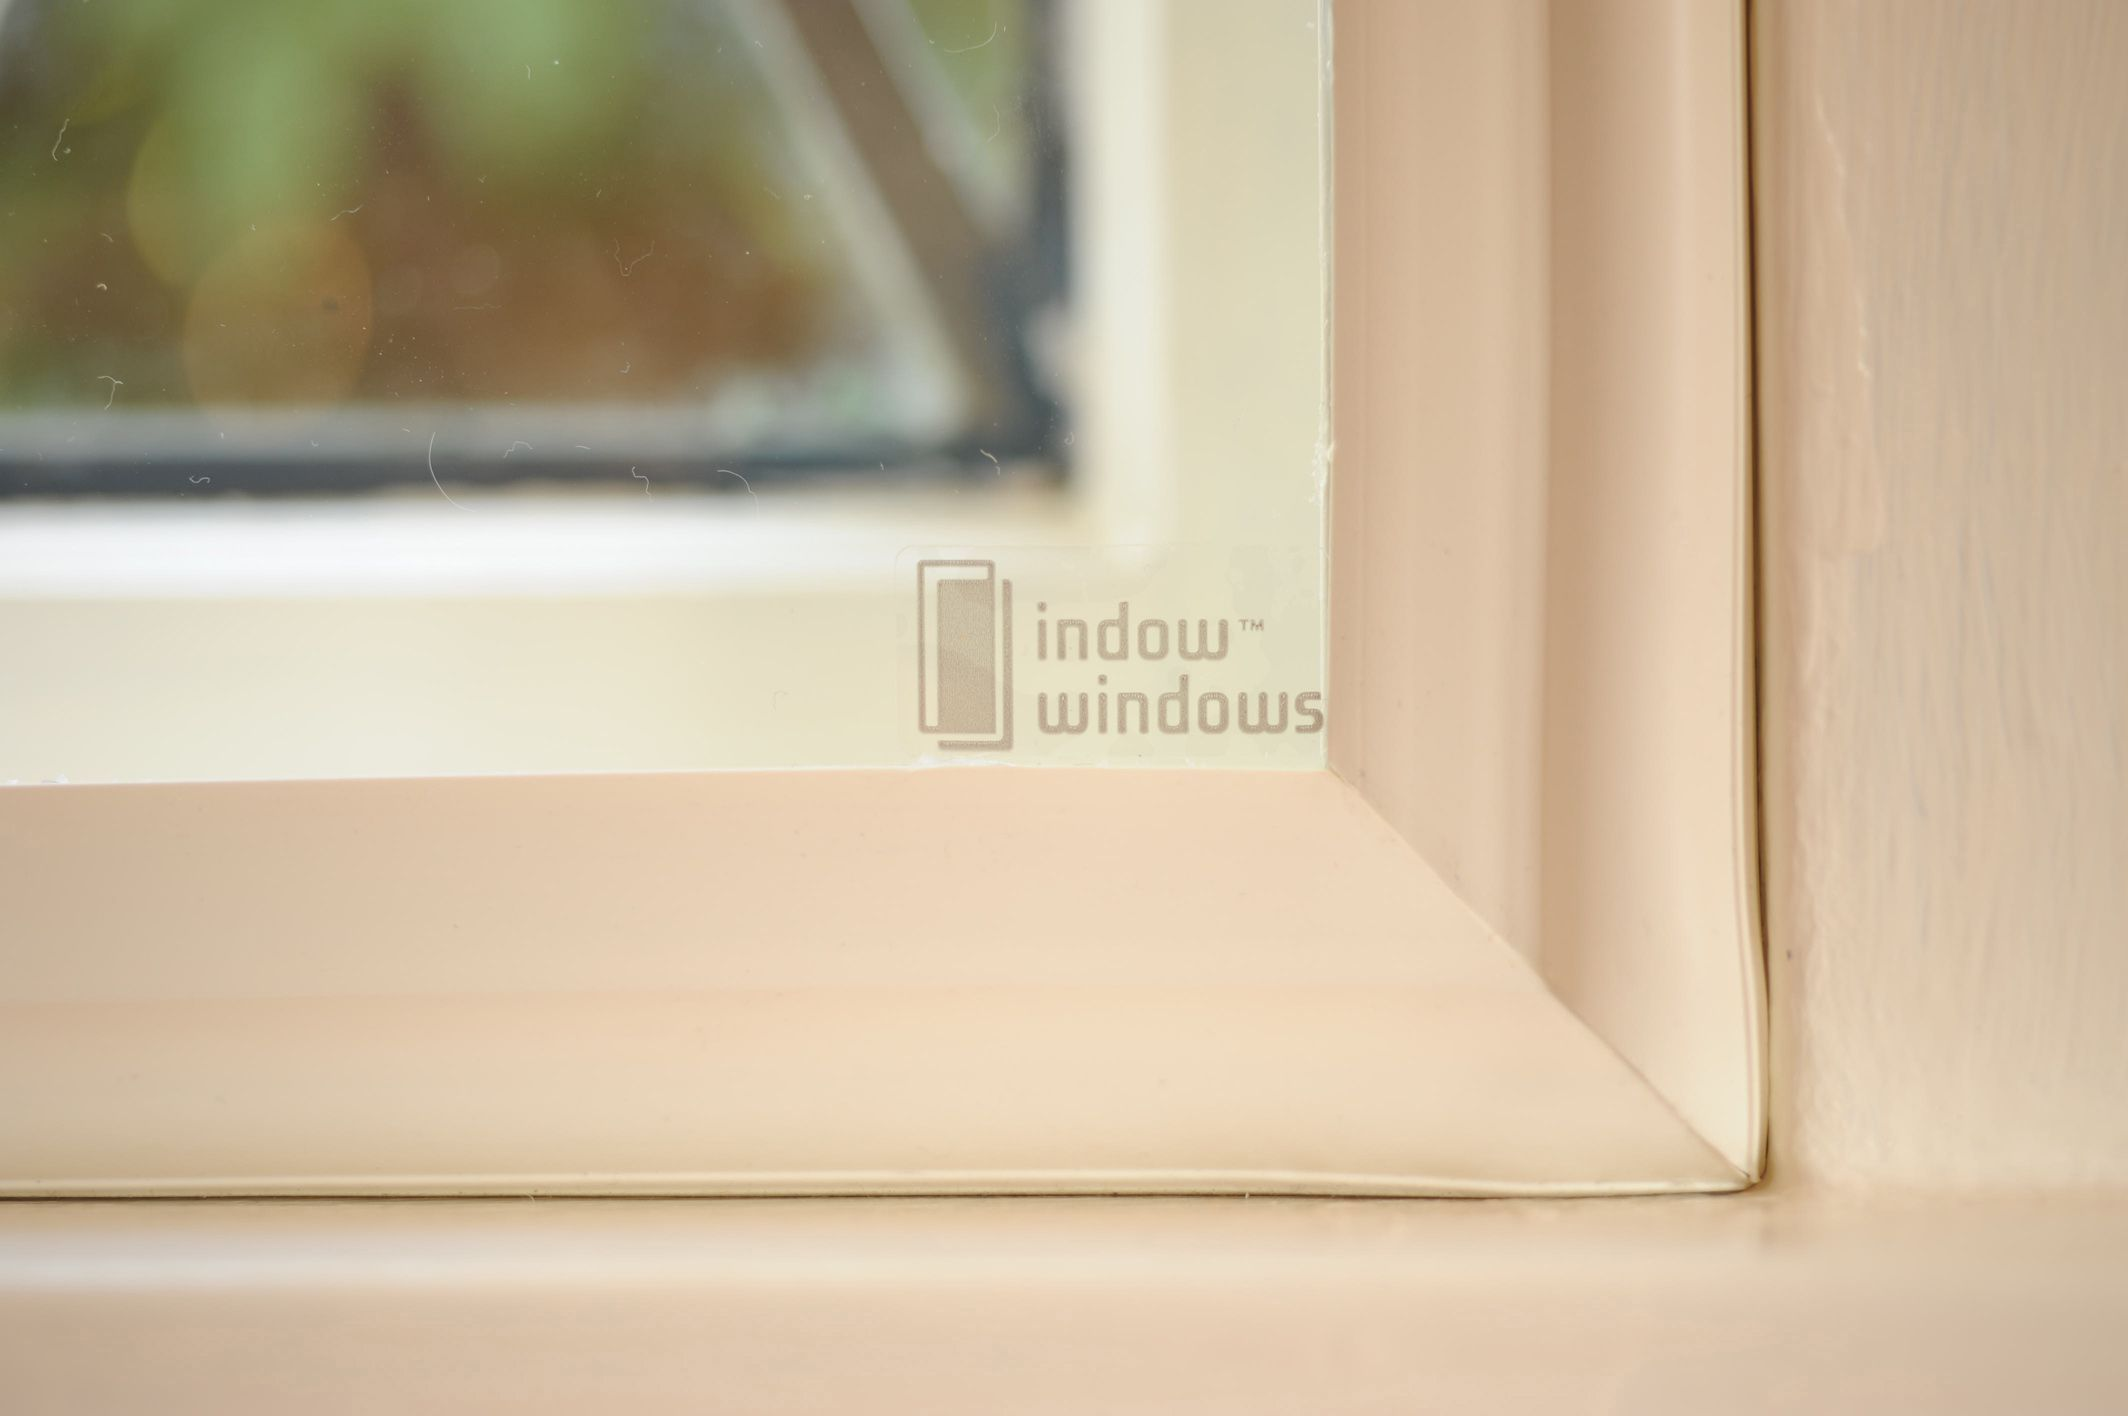 Soundproofing Hacks For Rooms And Apartments Sound Proofing Indow Windows Sound Proofing Apartment